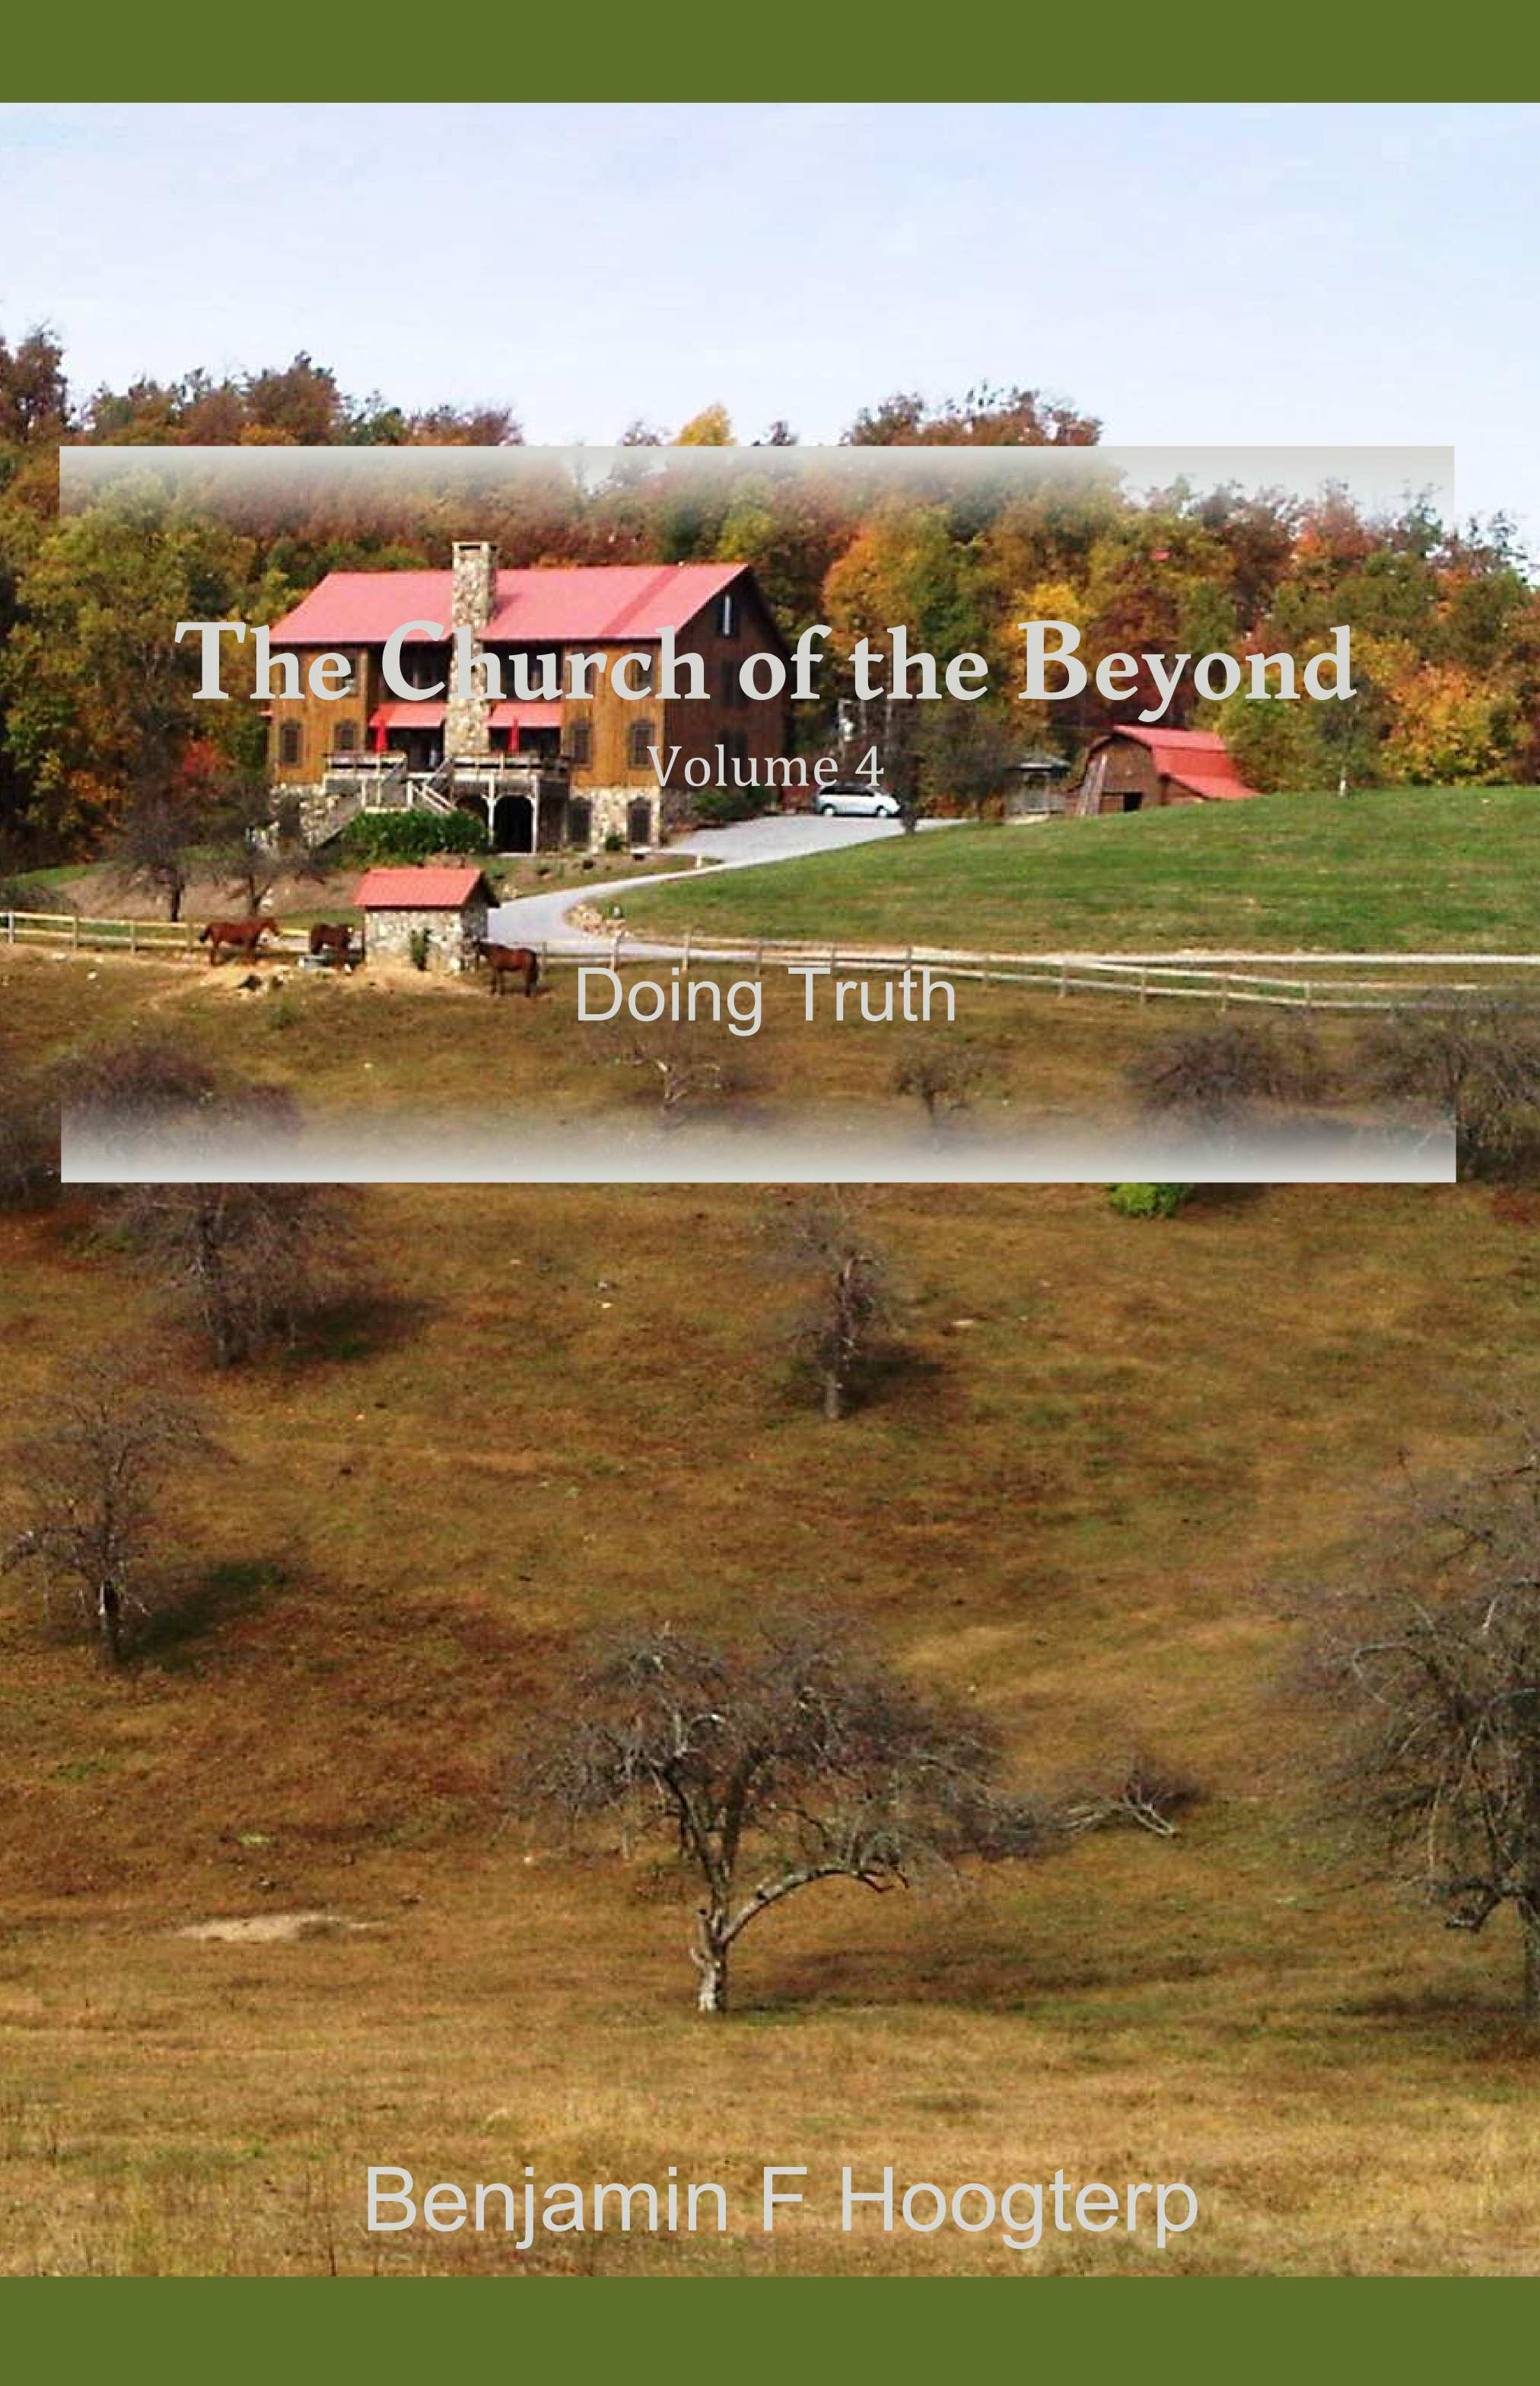 The Church of the Beyond, vol. 4: Doing Truth